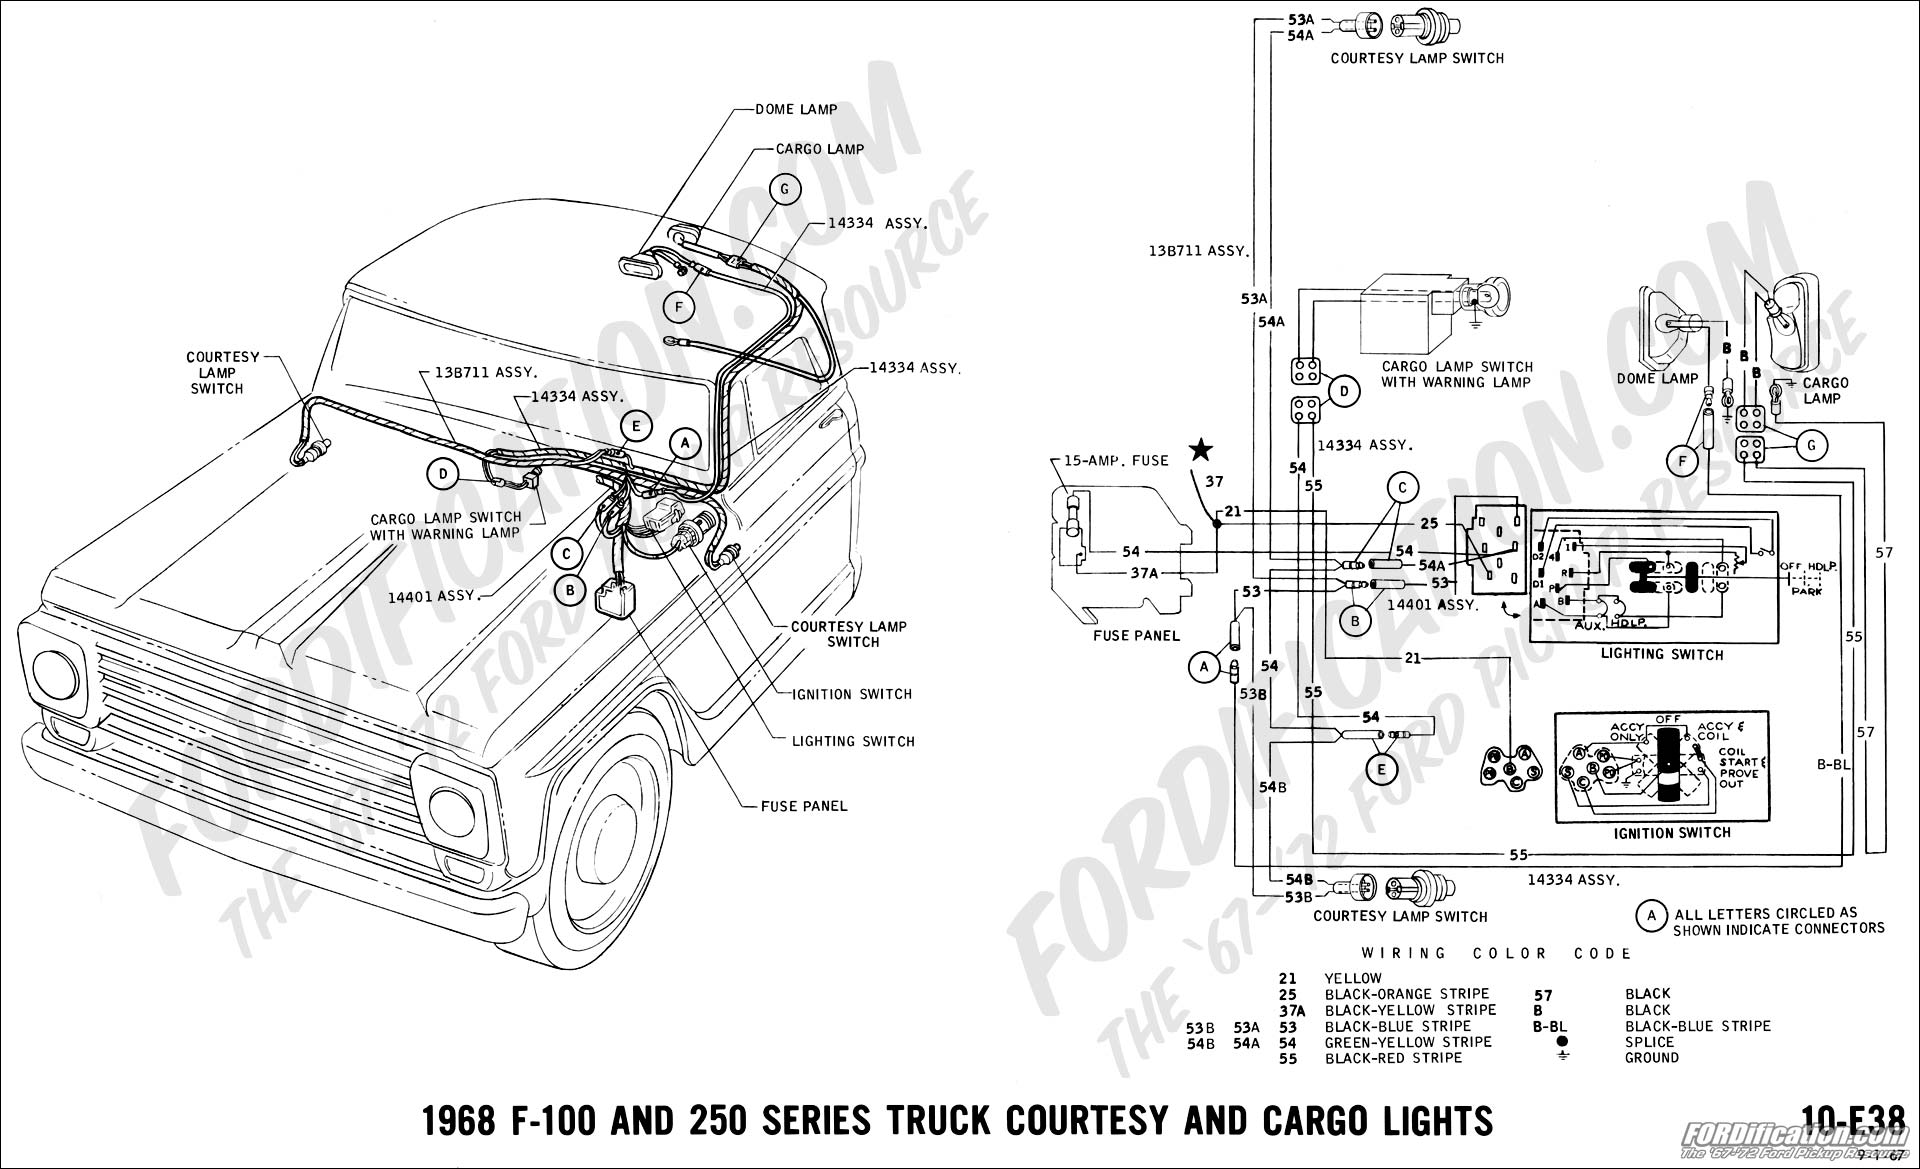 1975 ford f 250 wiring schematics wiring diagrams u2022 rh seniorlivinguniversity co 1975 Ford F100 Wiring Diagram 1976 F250 Wiring Diagram